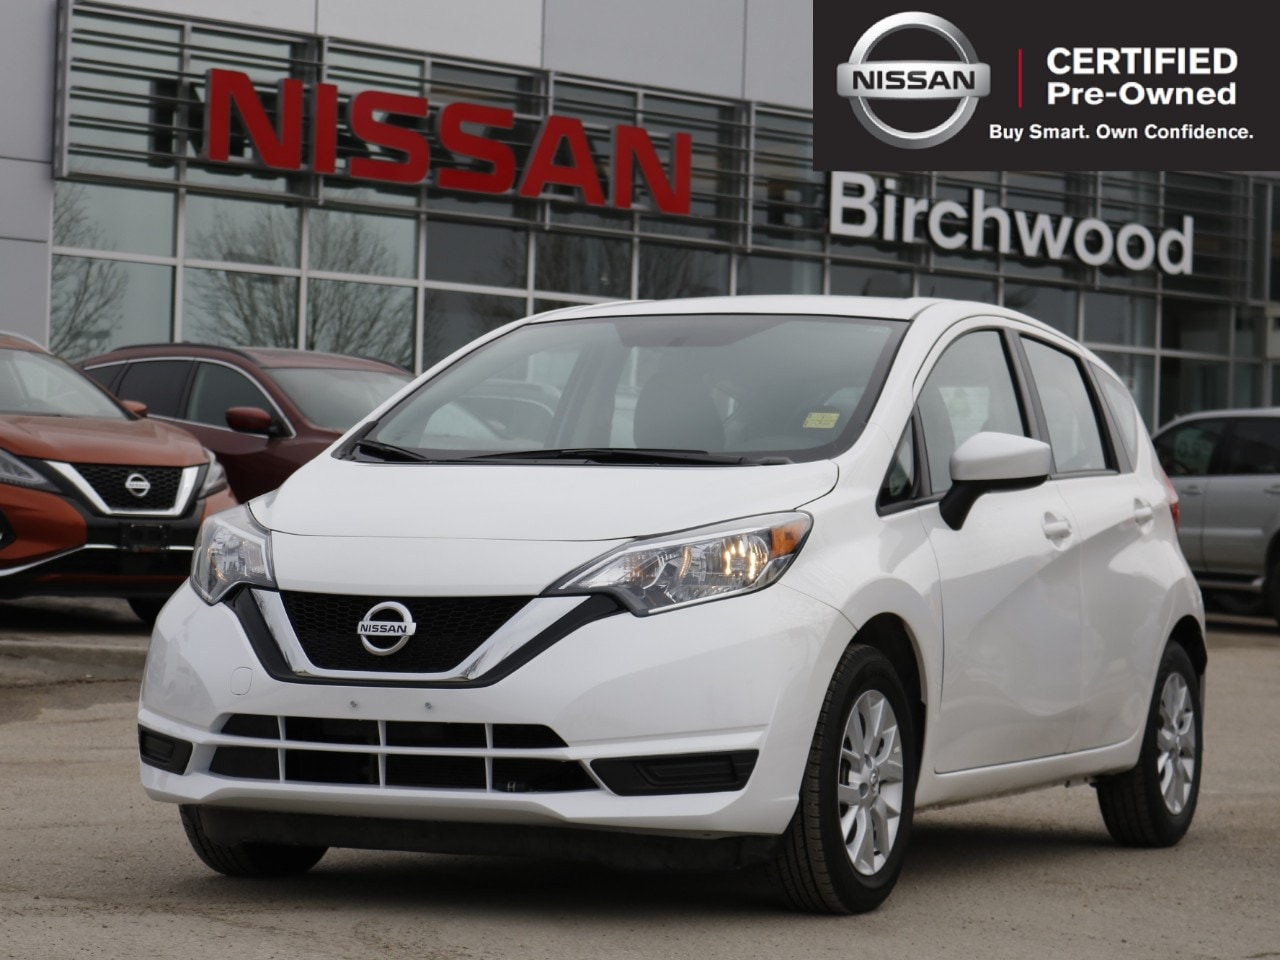 2018 Nissan Versa Note SV Certified Pre-Owned! Sedan